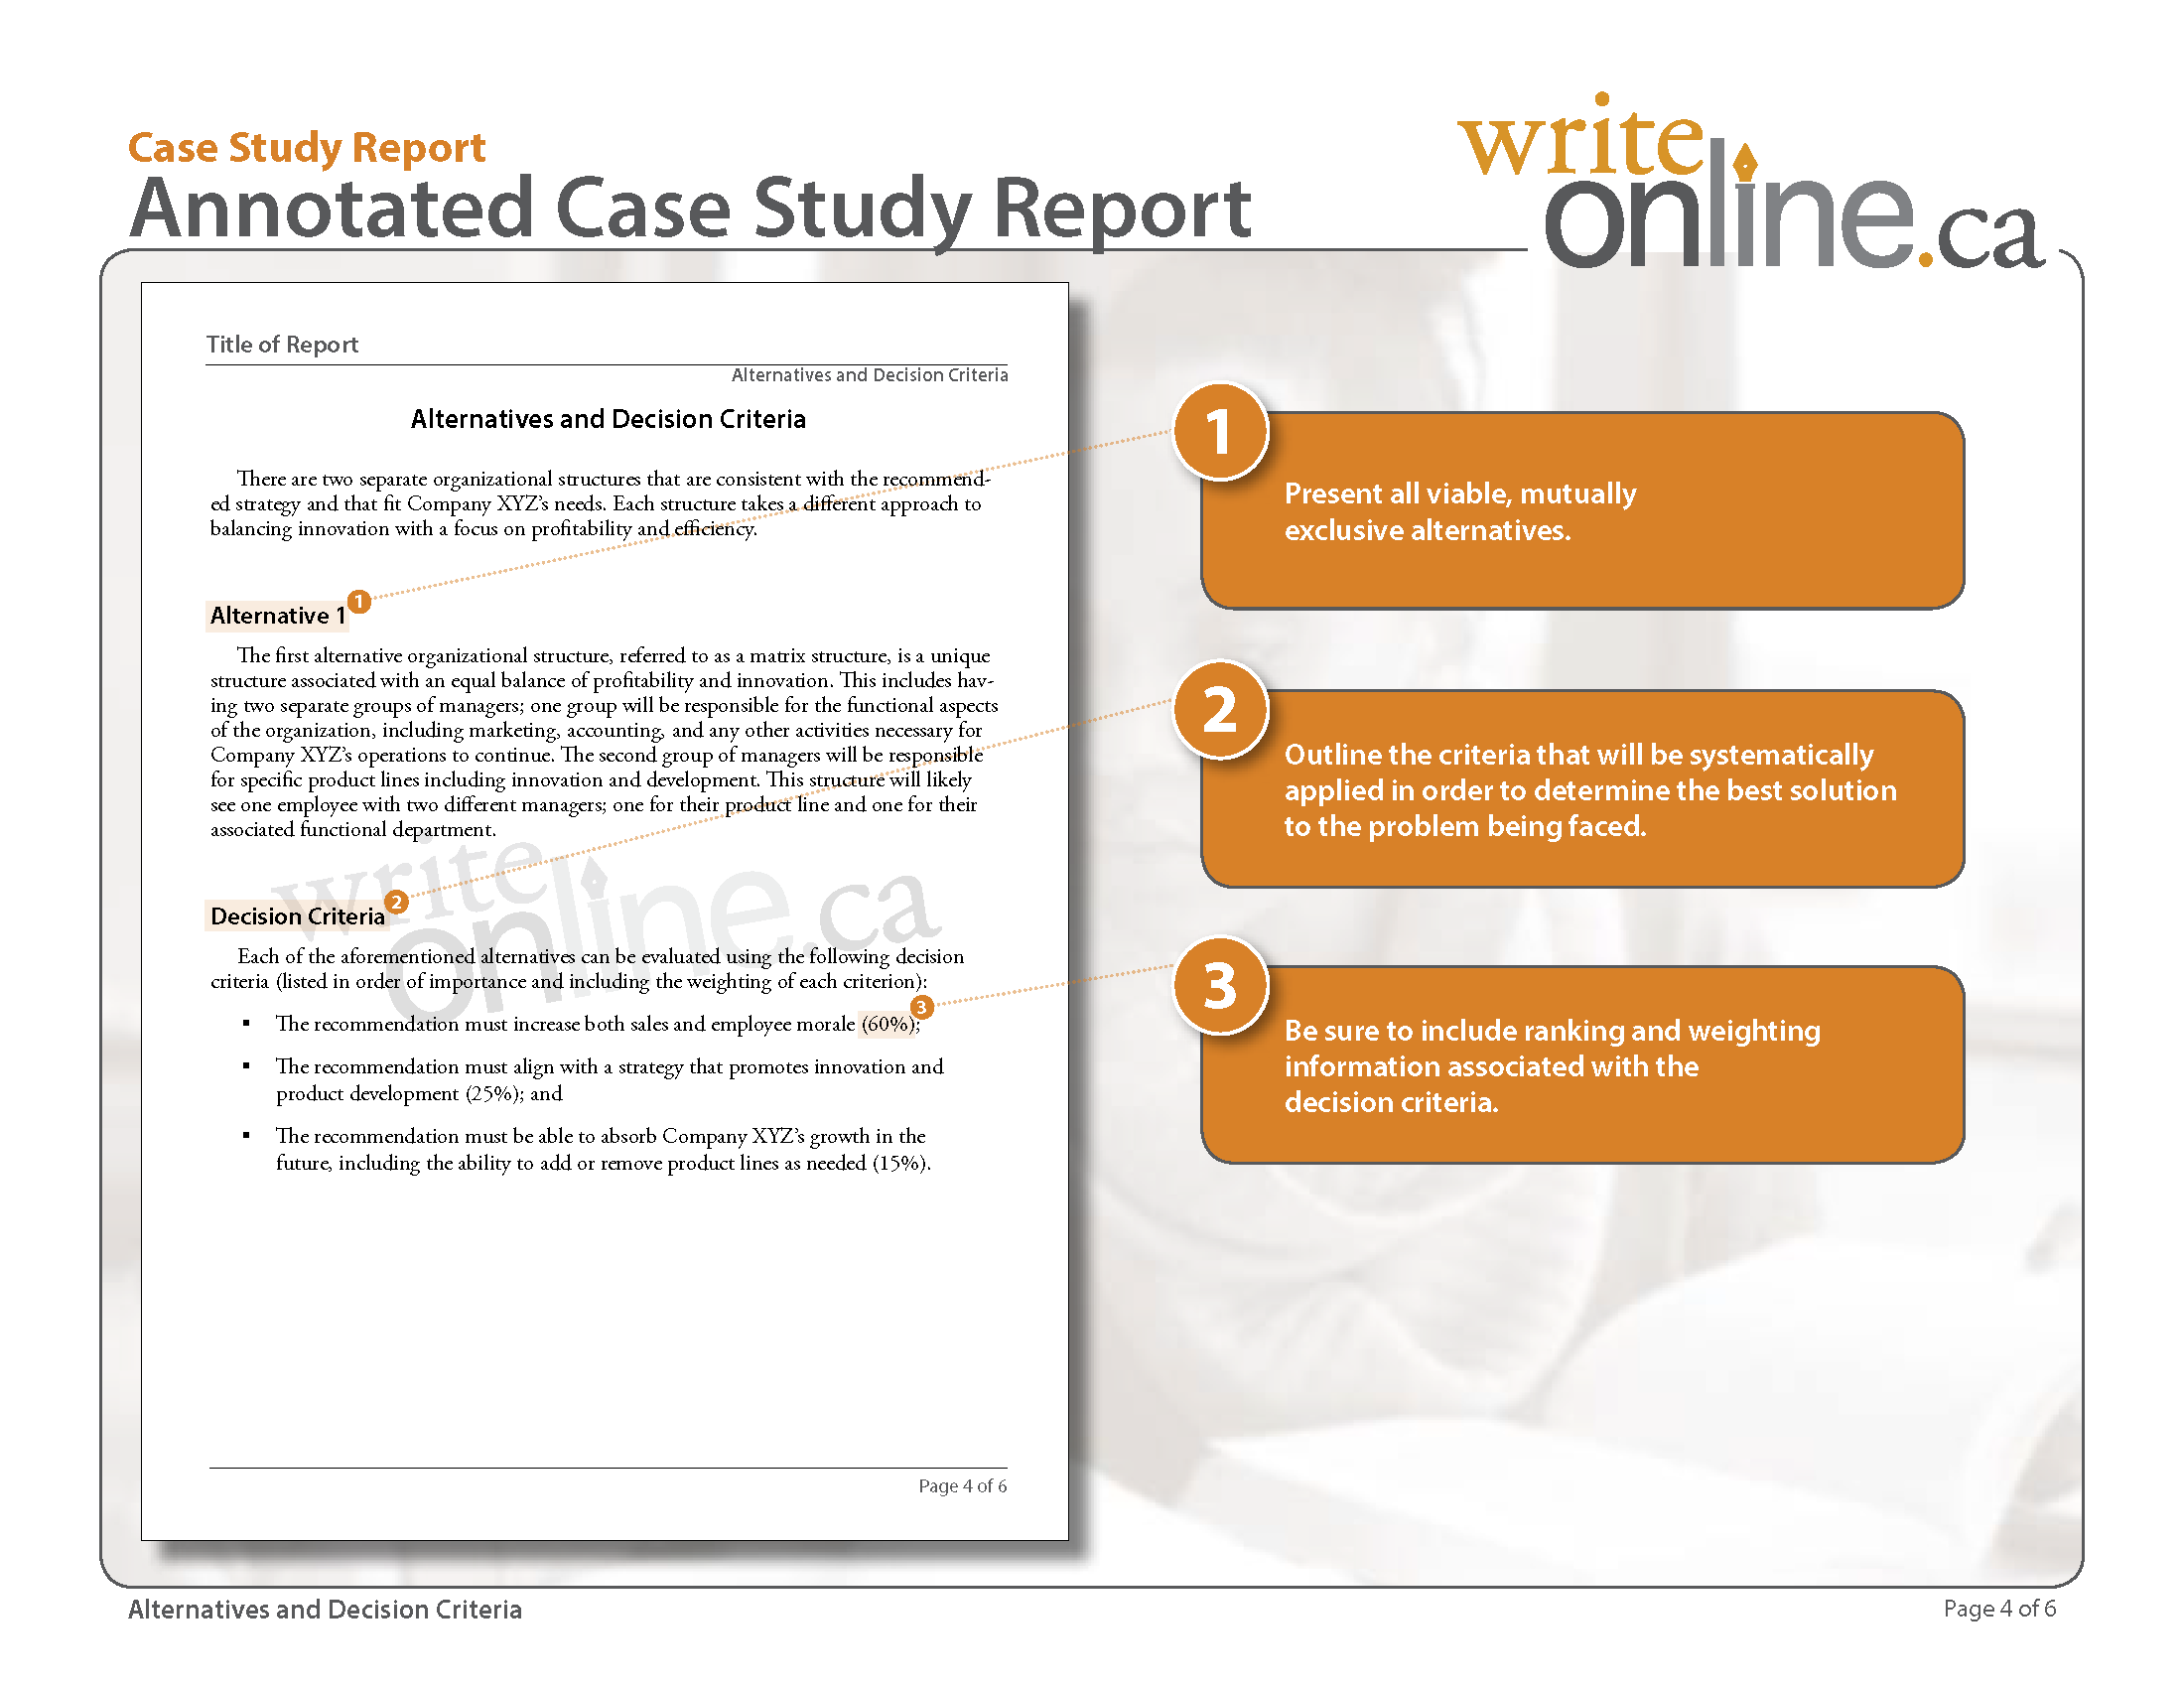 004 Research Paper Casestudy Annotatedfull Page 4 Parts Of And Its Definition Staggering A Pdf Full